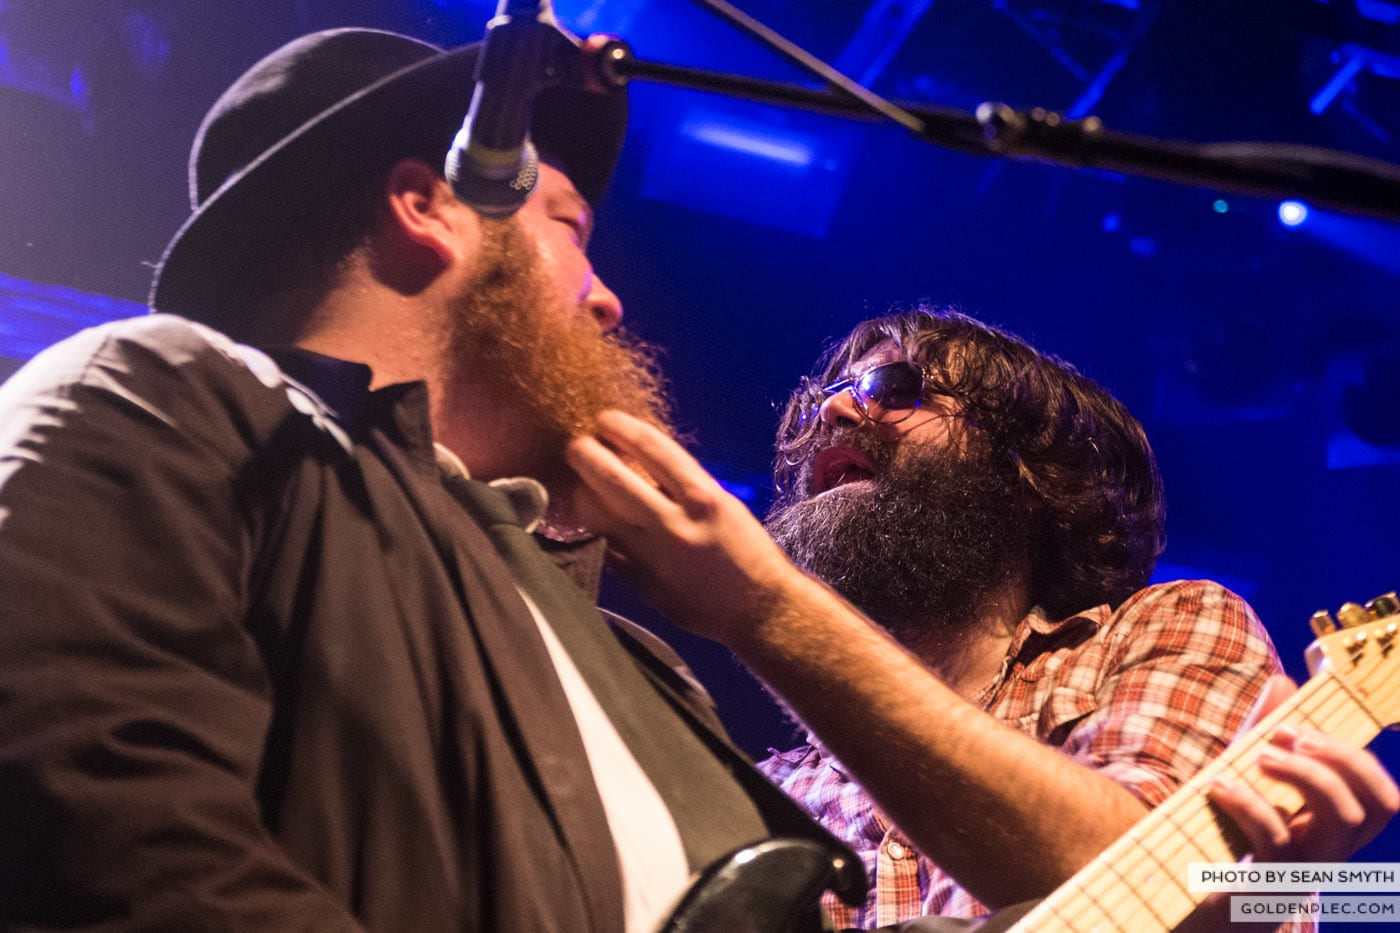 the-beards-at-button-factory-by-sean-smyth-10-12-14-17-of-49